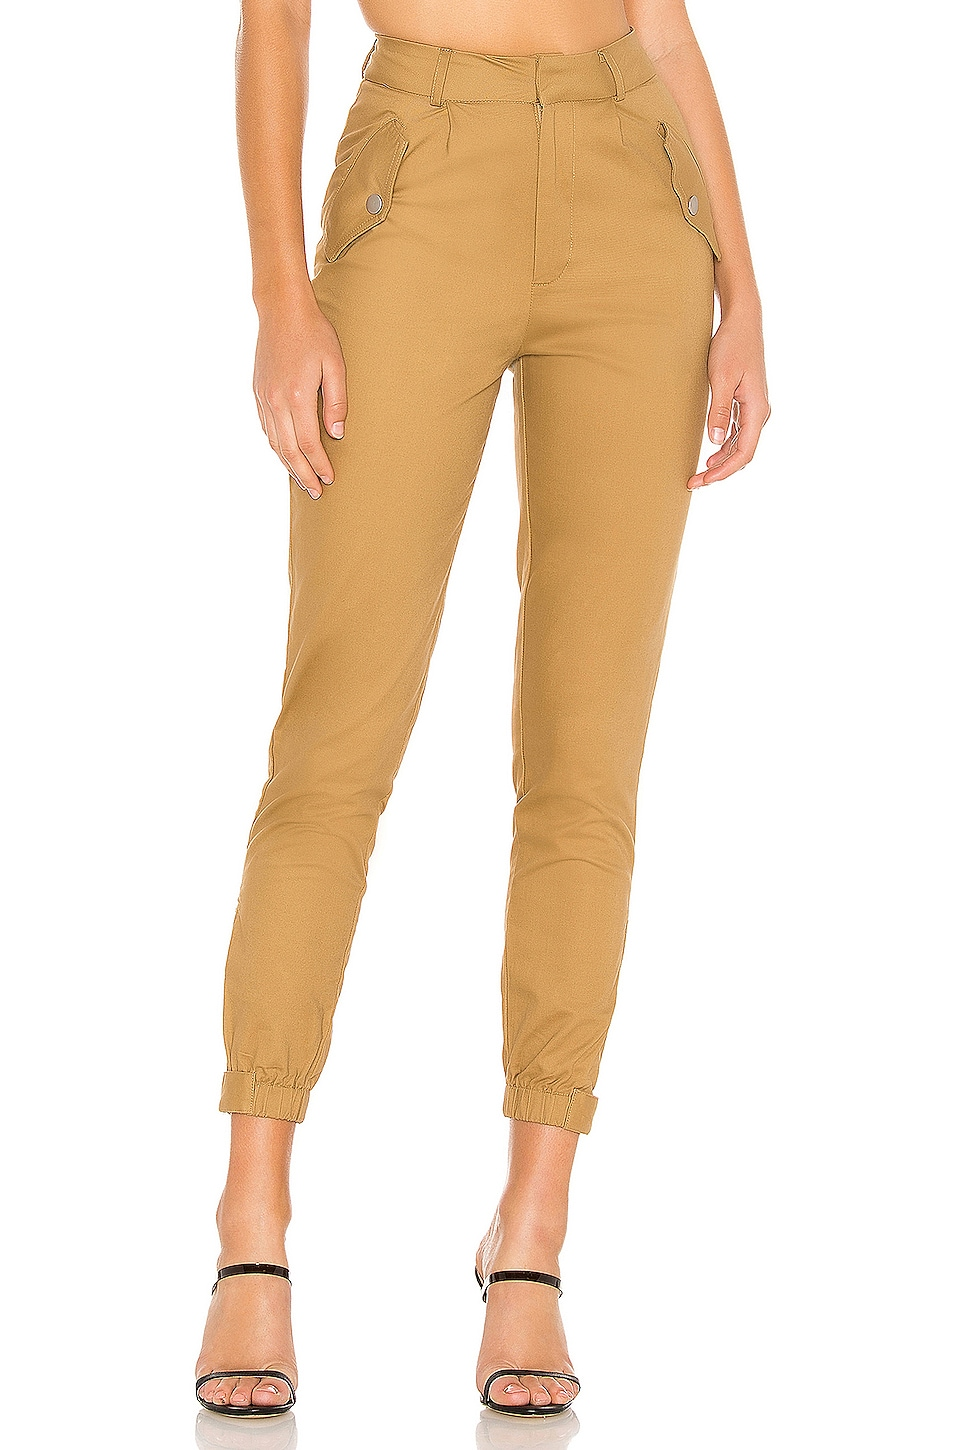 superdown Imogen Pant in Tan